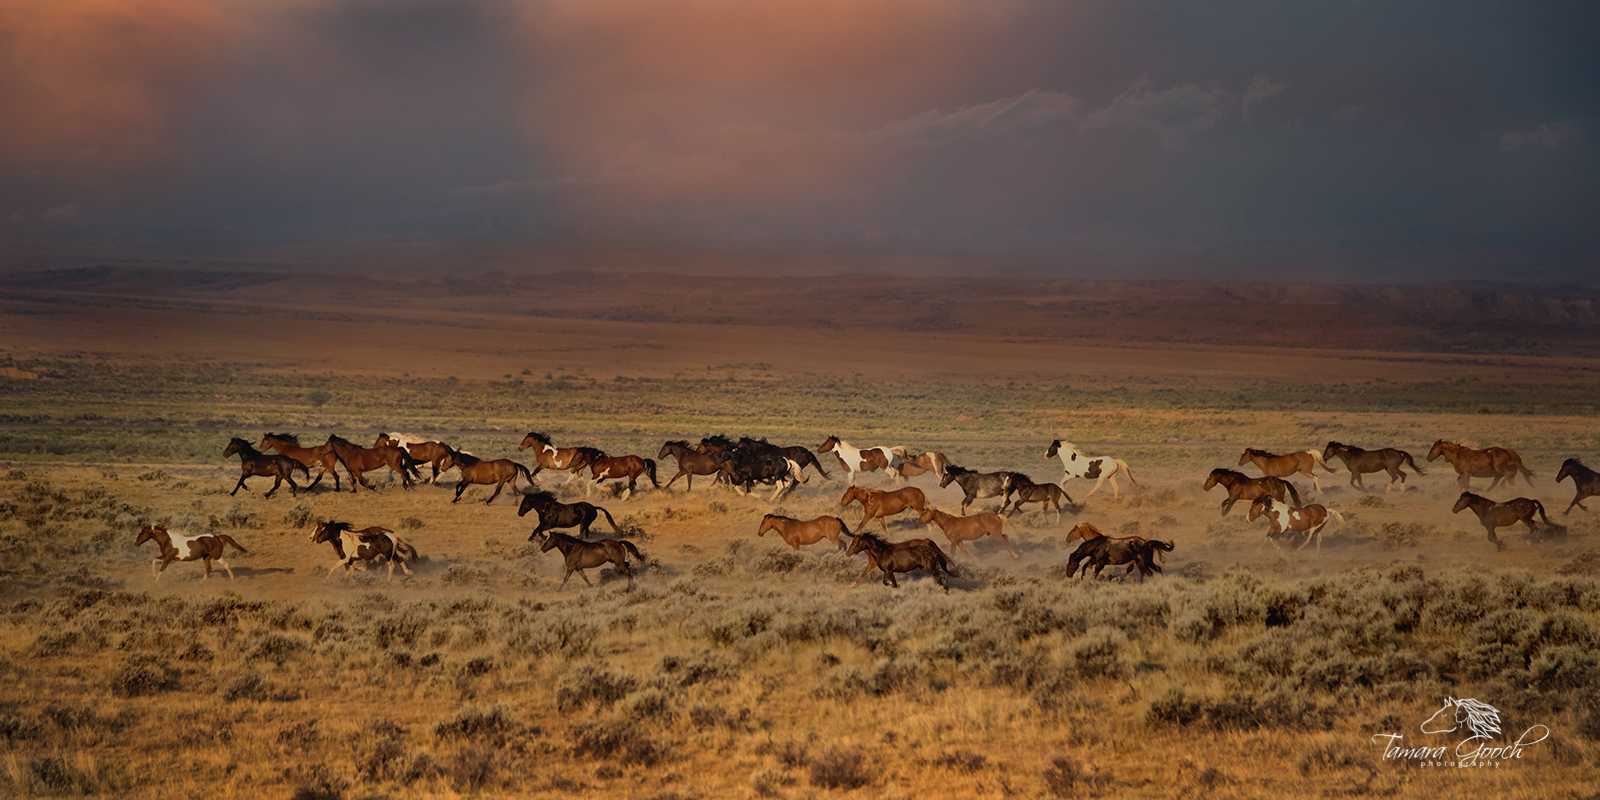 Idaho horse photographer, McCullough Peaks, WY, band, herd, equestrian, equestrian lifestyle, equestrian, wild horses, herds of horses, horses galloping, running, desert, wild, mustangs, Wyoming, thun, photo